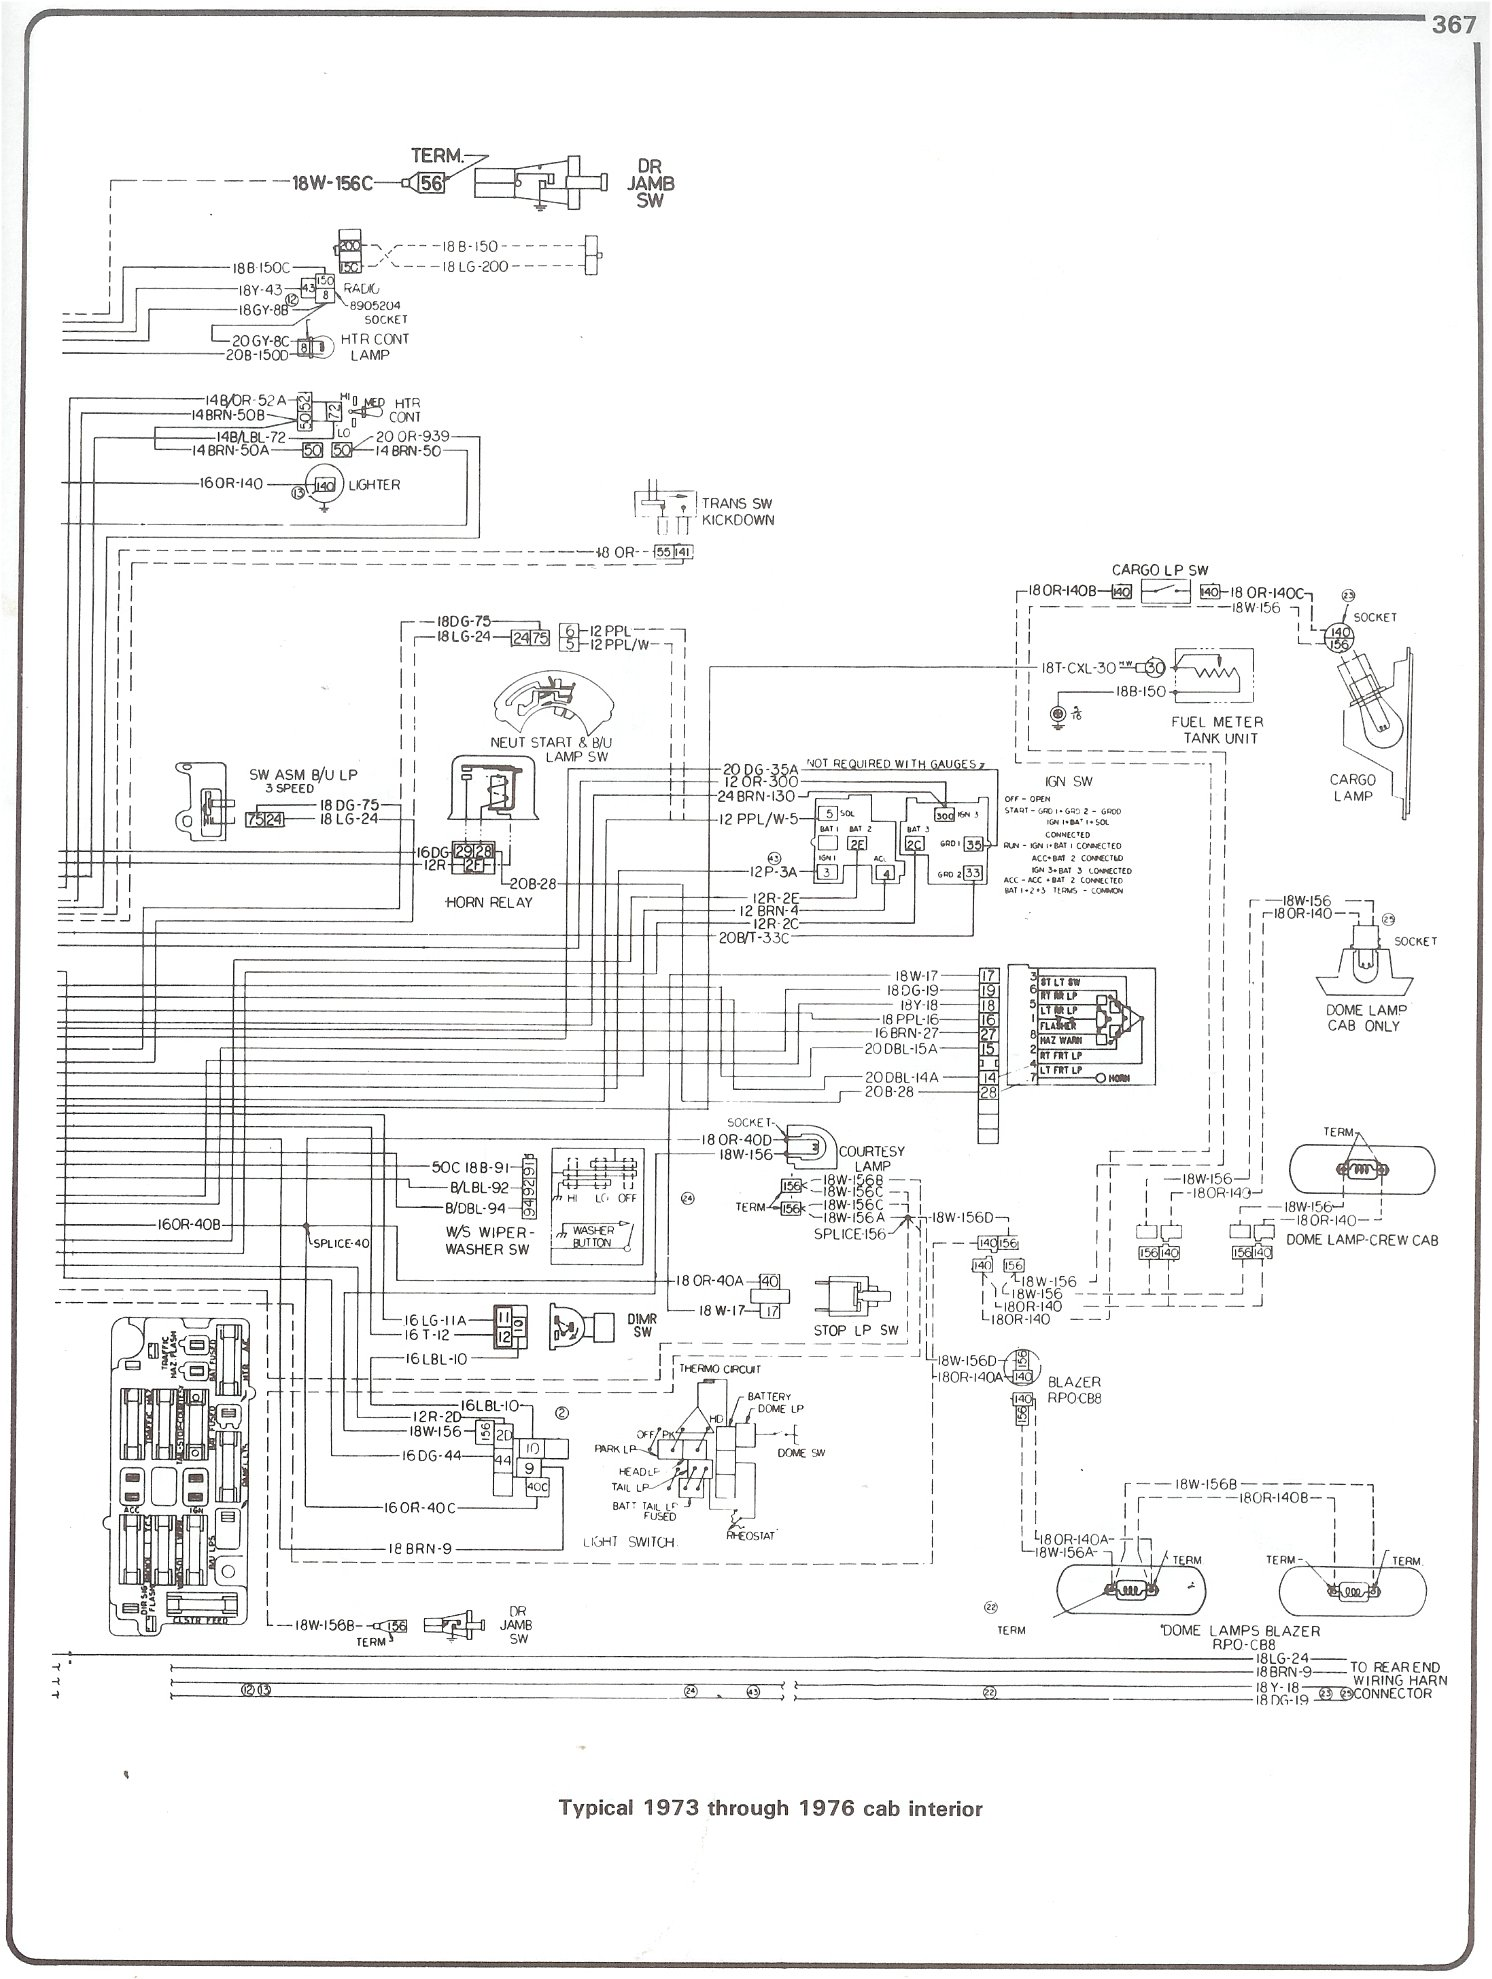 73 76_cab_inter complete 73 87 wiring diagrams S10 Lighting Wiring Diagram at gsmportal.co